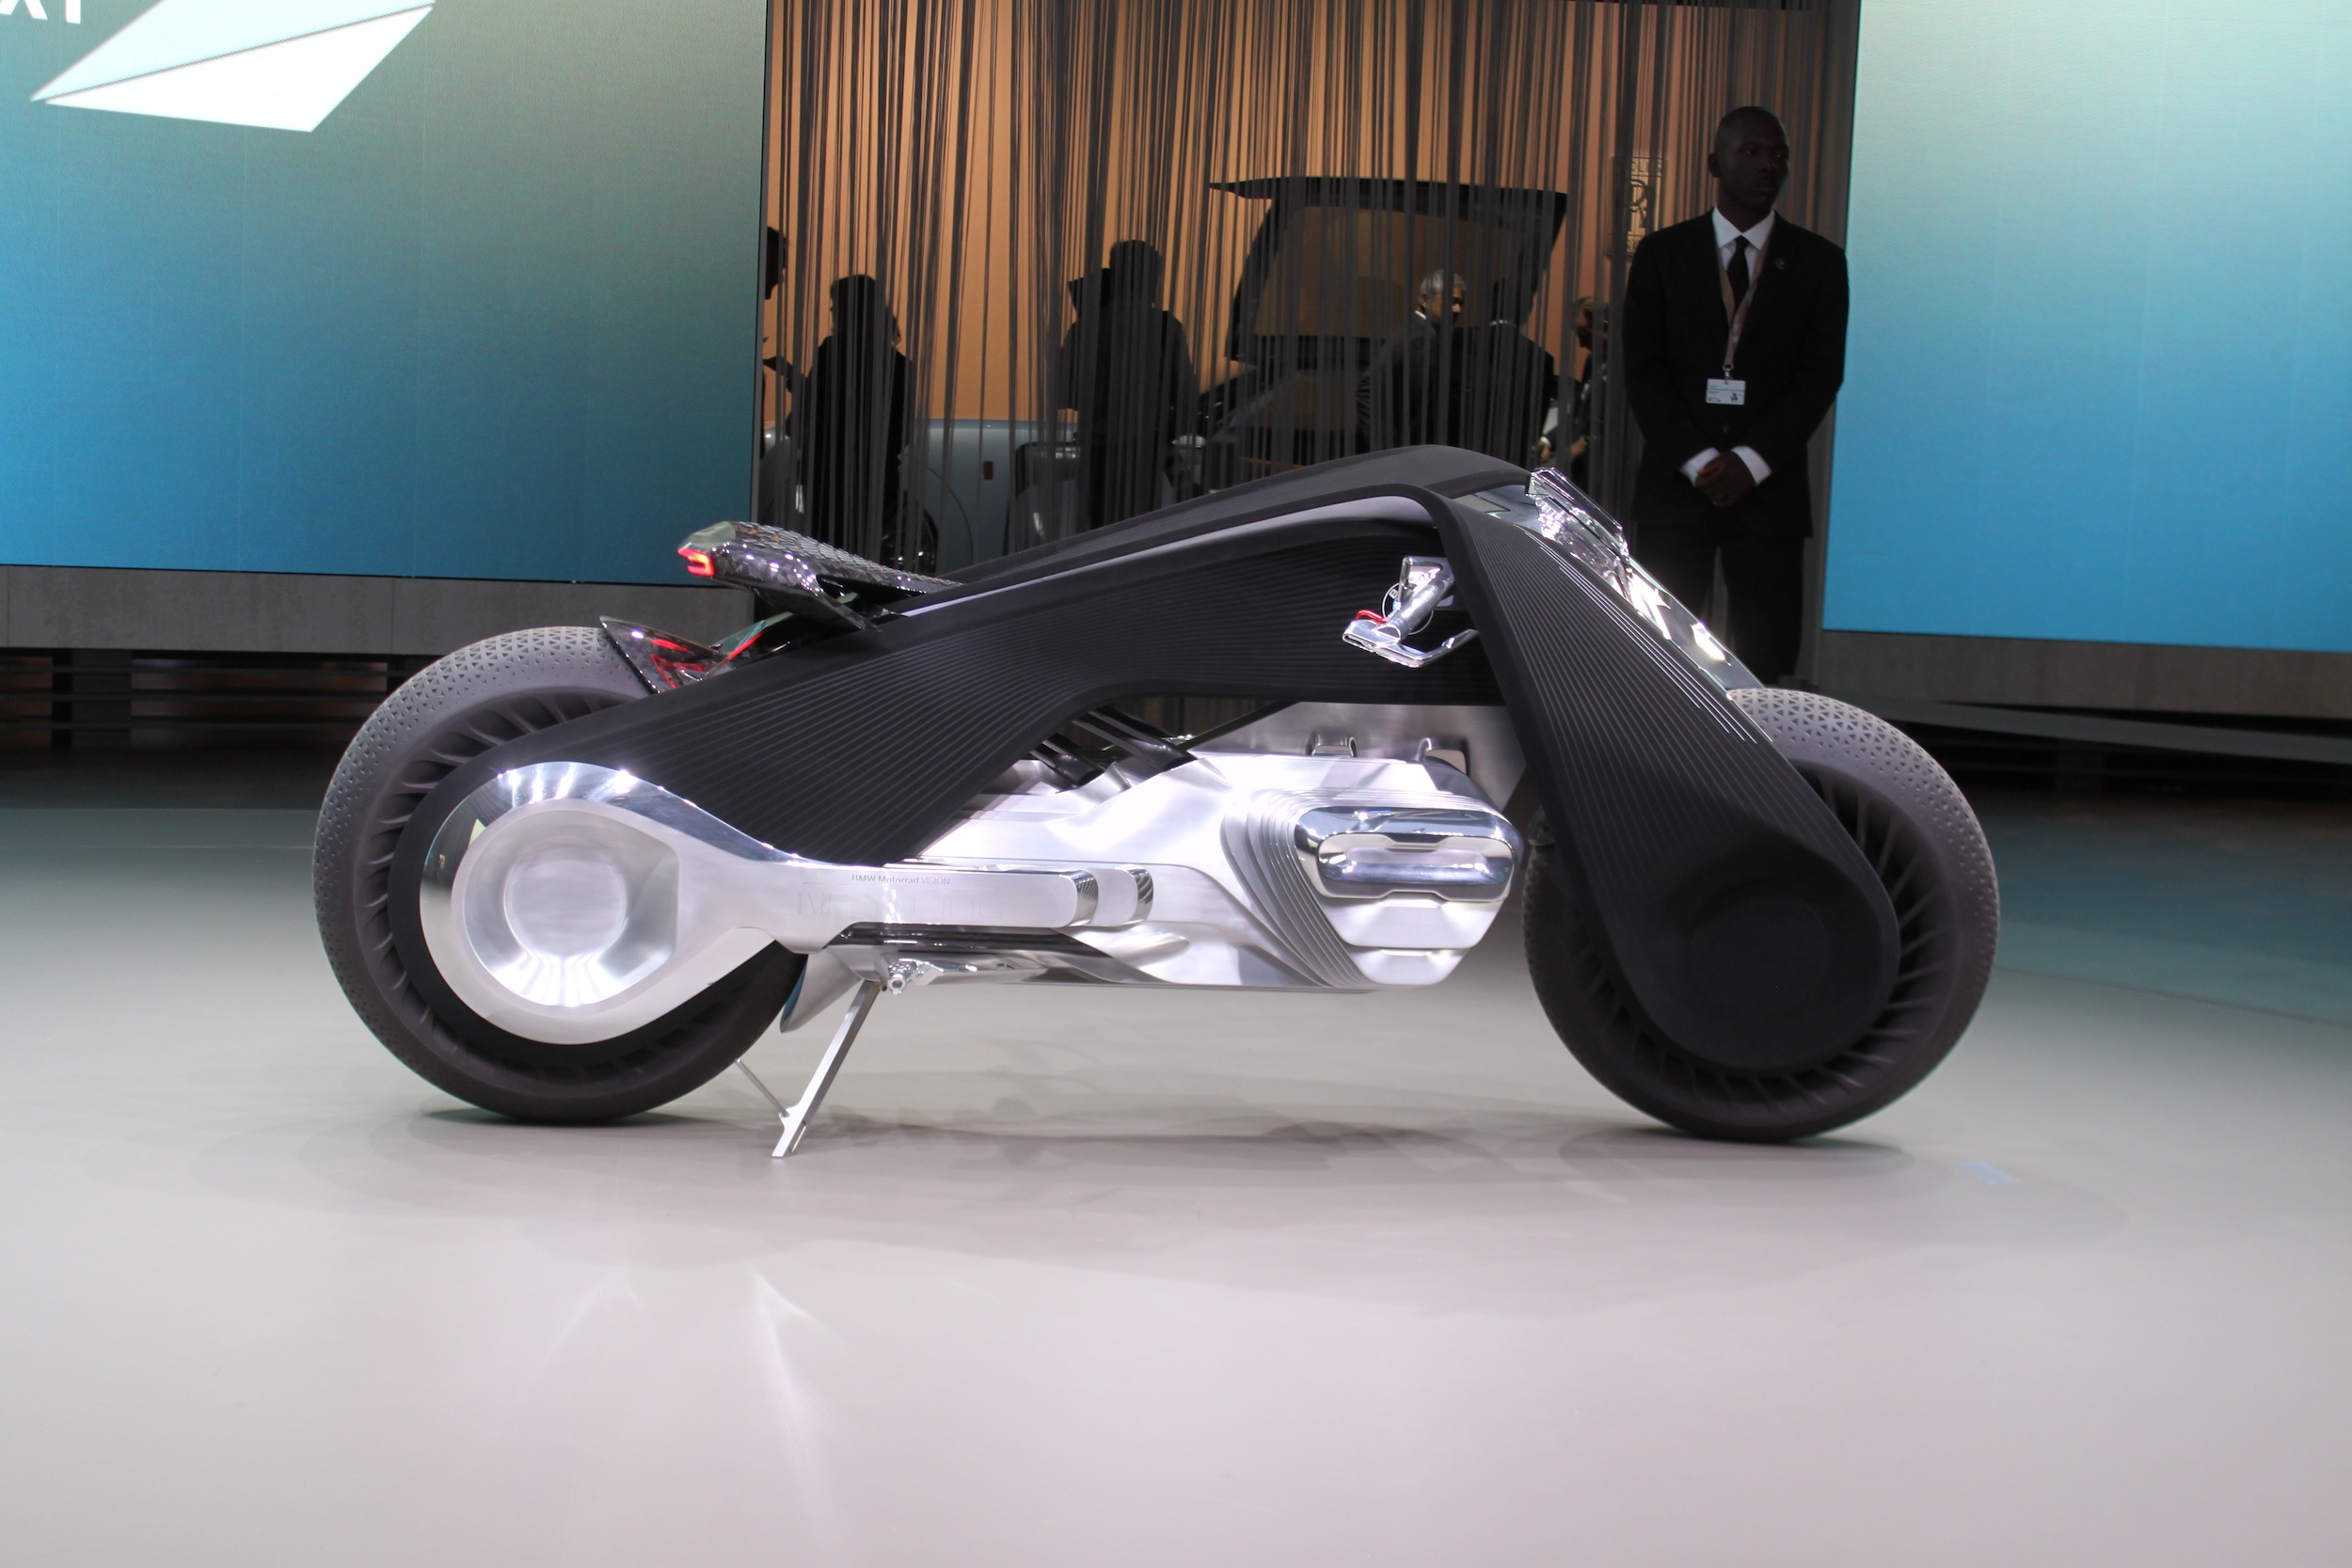 bmw concludes 100th birthday tour in la with new motorcycle concept rh autoguide com BMW Motorrad GS BMW Motorcycles